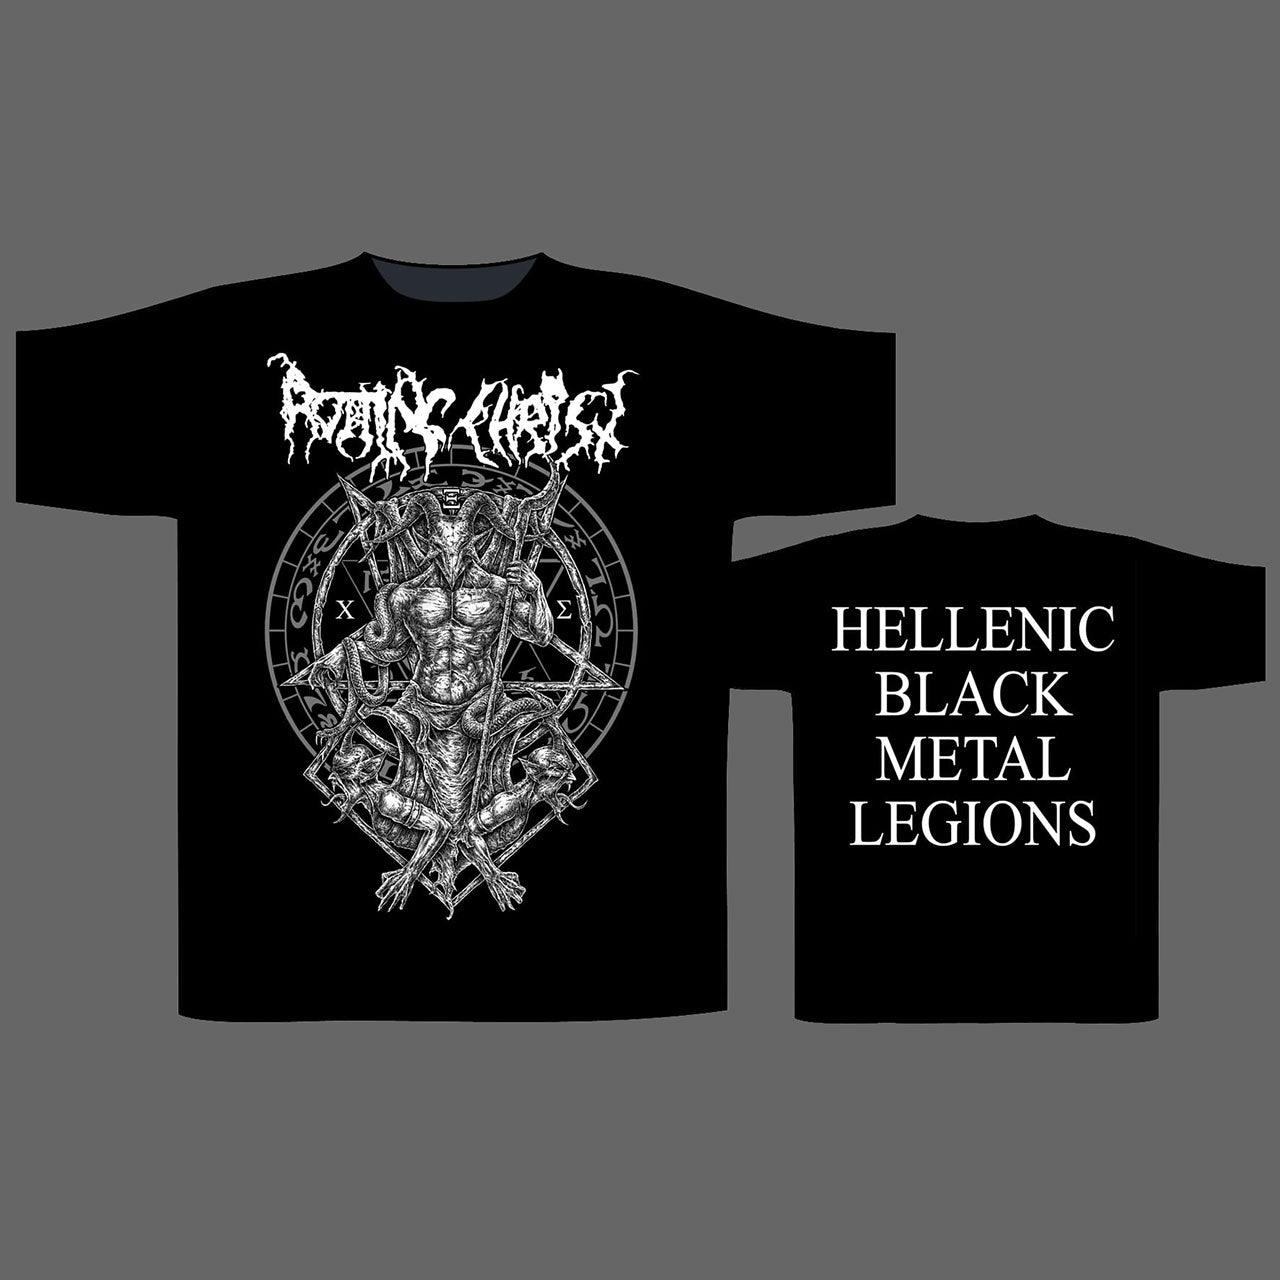 Rotting Christ - Hellenic Black Metal Legions (T-Shirt)